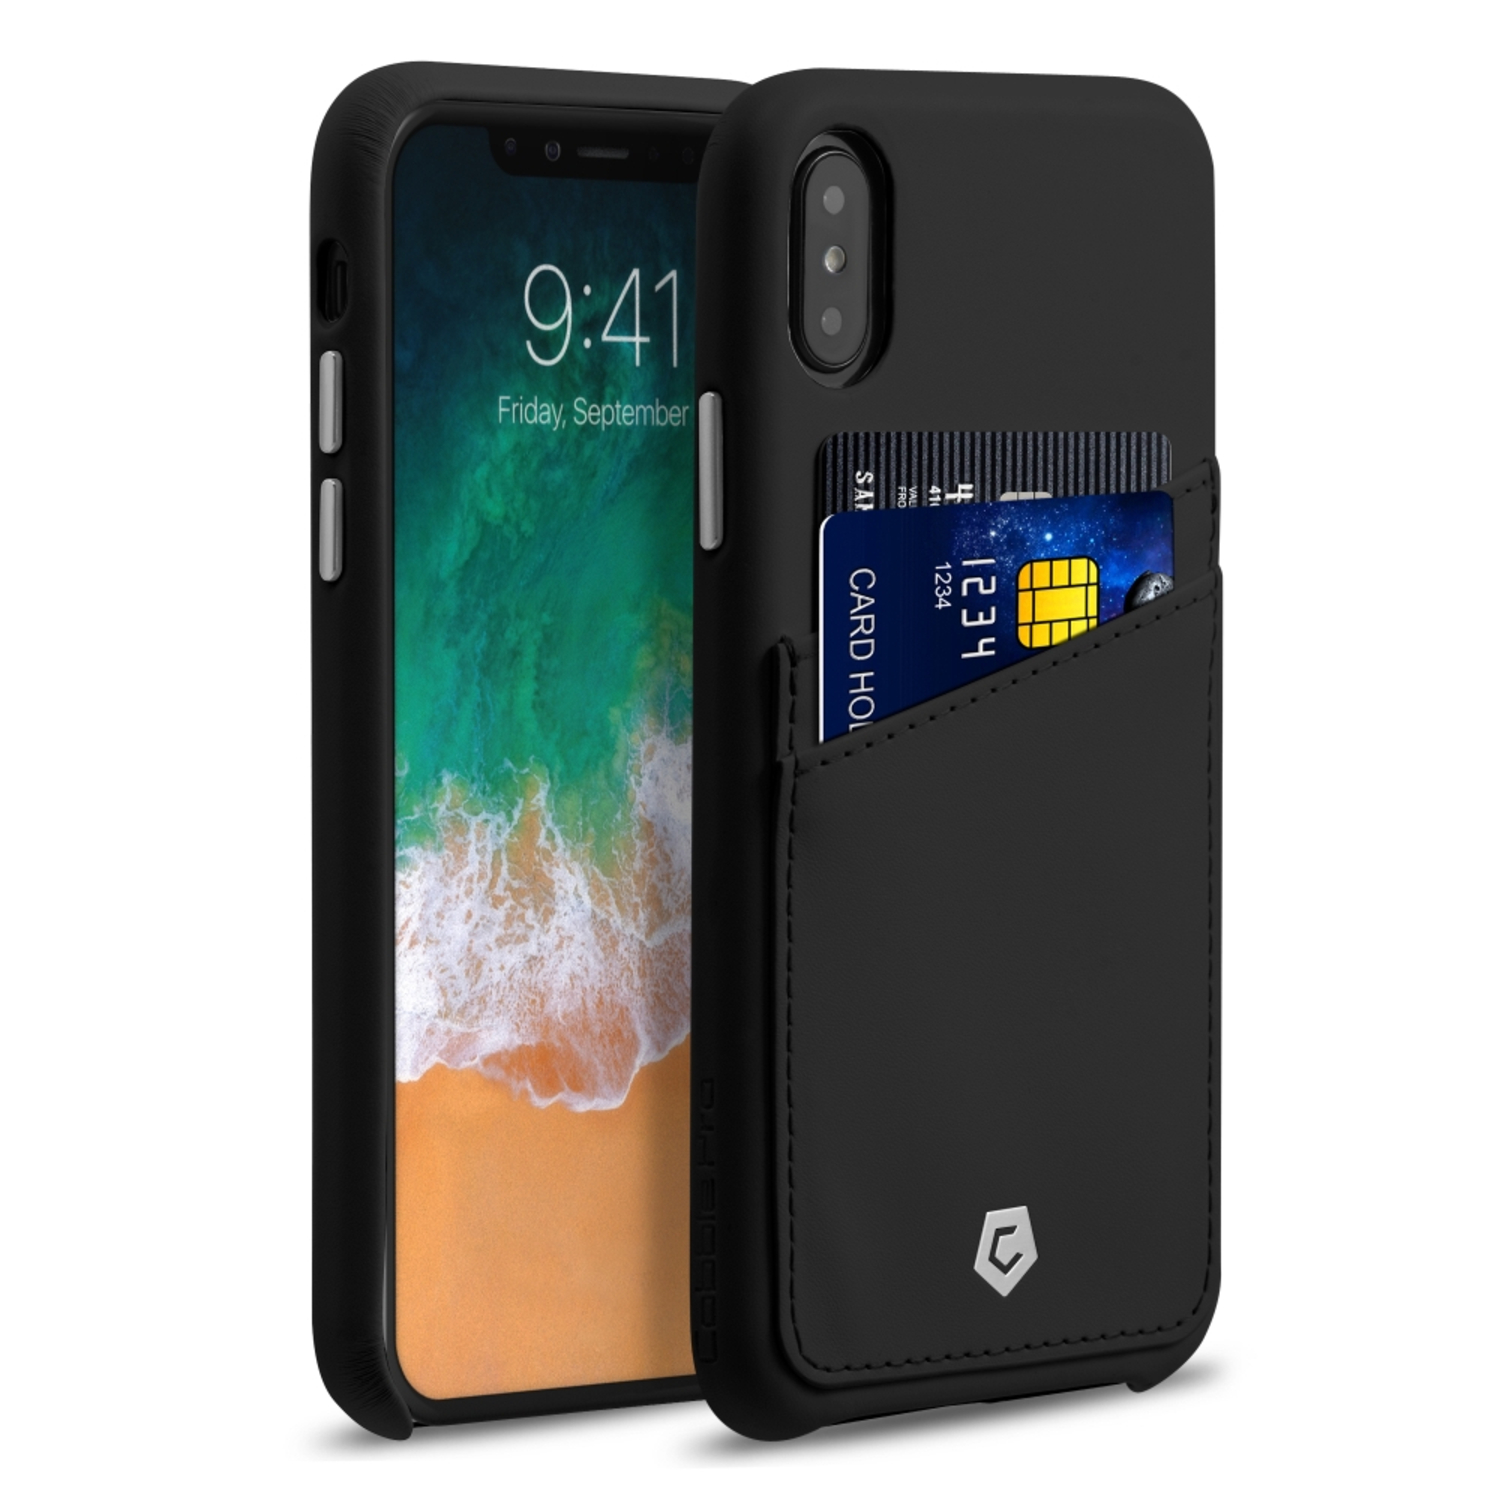 iPhone X Case, iPhone X Wallet Case, iPhone X Phone Case, by Cobble Pro Handcrafted Wallet Leather Case Cover with ID Card Slot Holder For Apple iPhone X 10 (Supports Wireless Charger Charging) Black